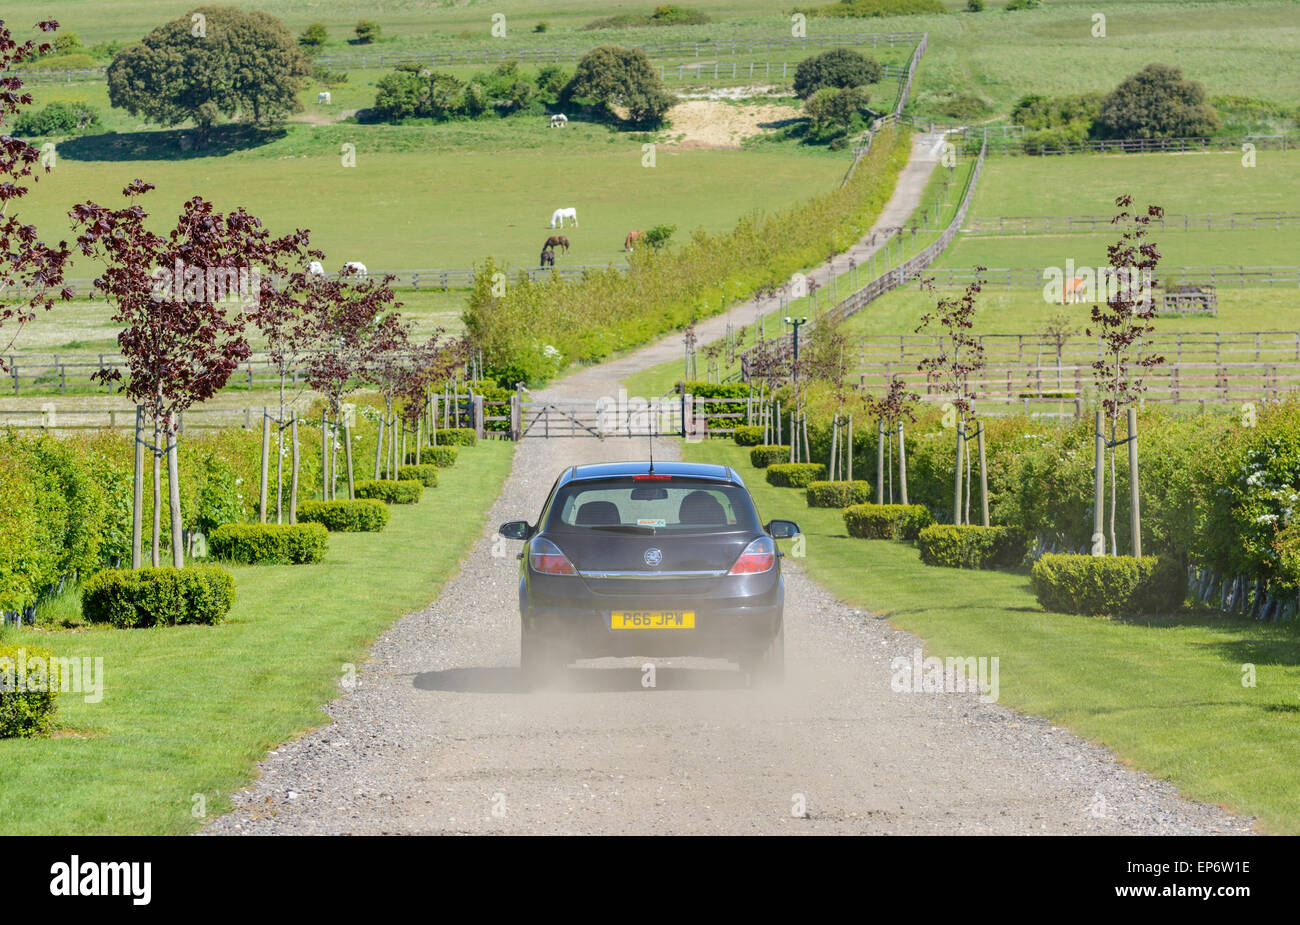 Car driving up a private road between fields in the British countryside. - Stock Image